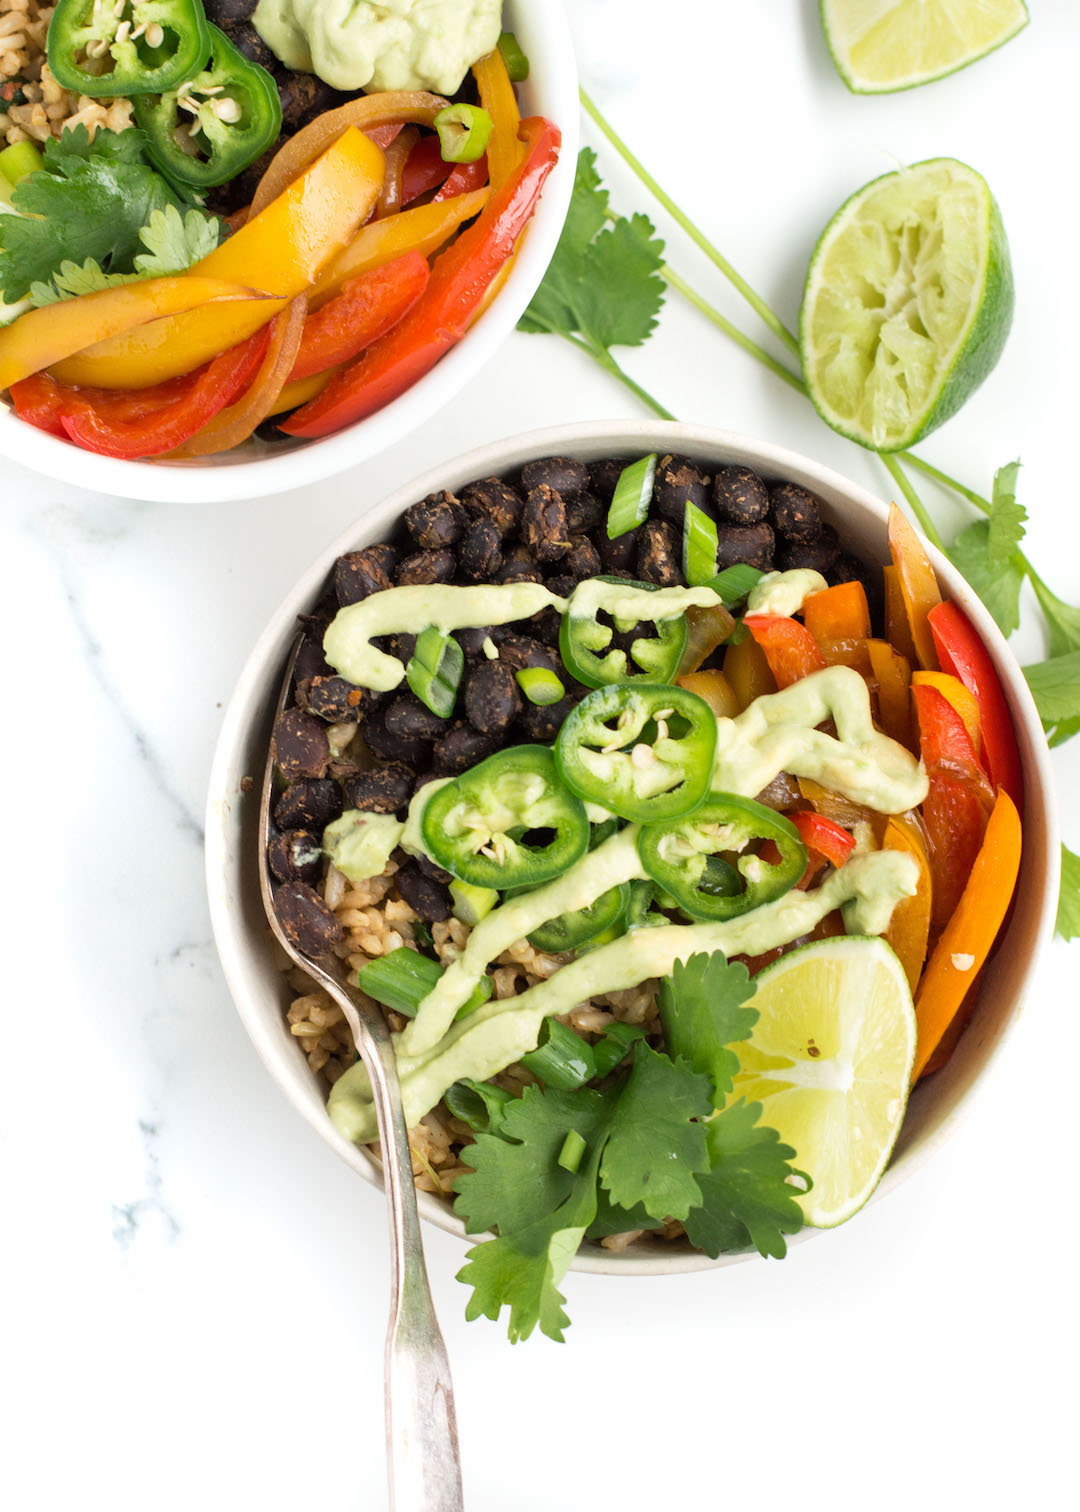 Veggie Burrito Bowl with Black Beans | healthy dinner recipe | vegan-possible, gluten free, vegetarian, easy to make |